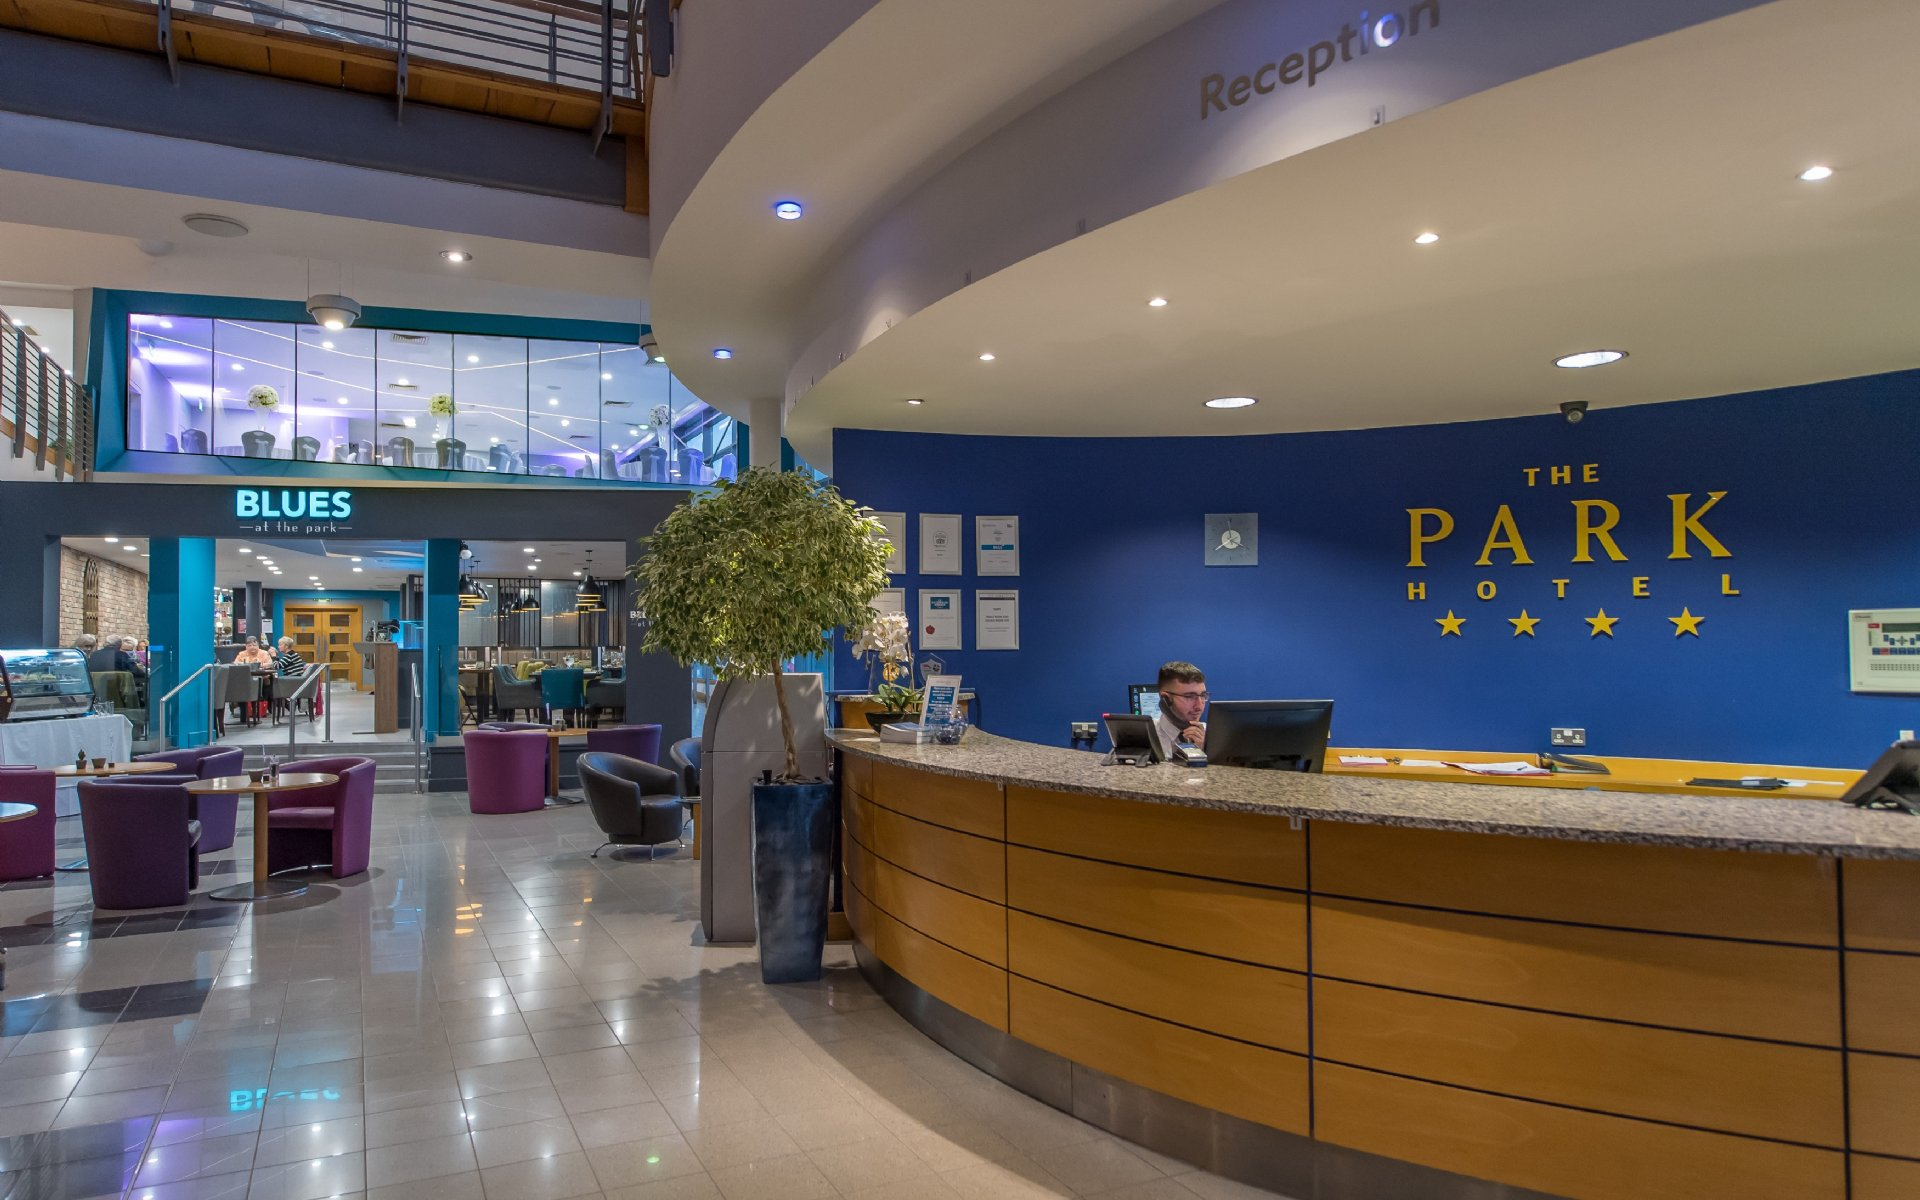 Welcome to the Park Hotel, Kilmarnock